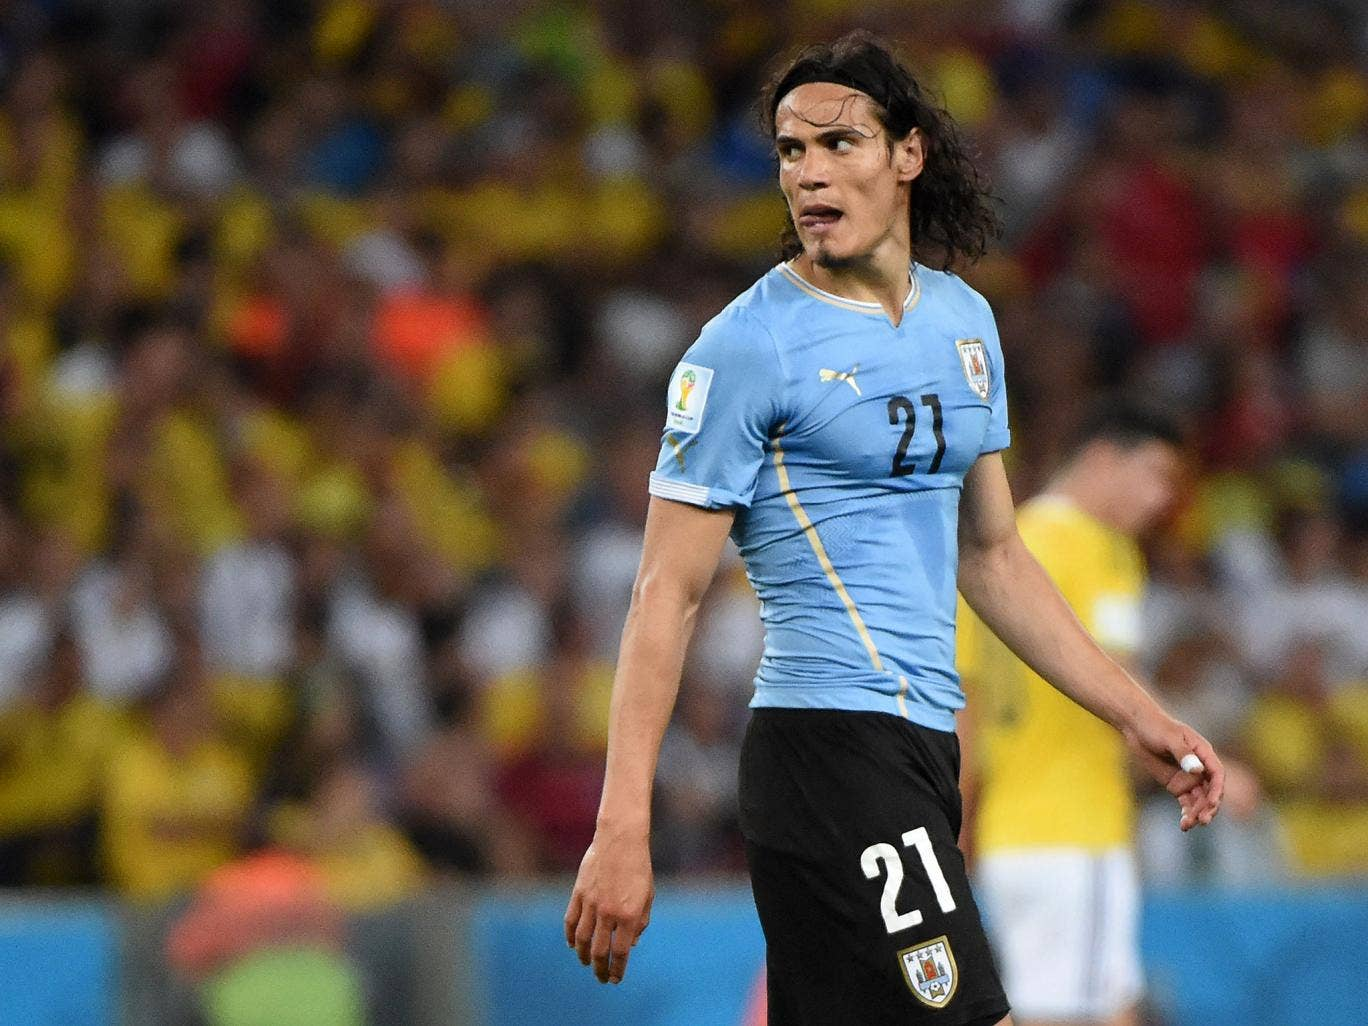 Uruguay striker Edinson Cavani could be on his way out of PSG after just one season